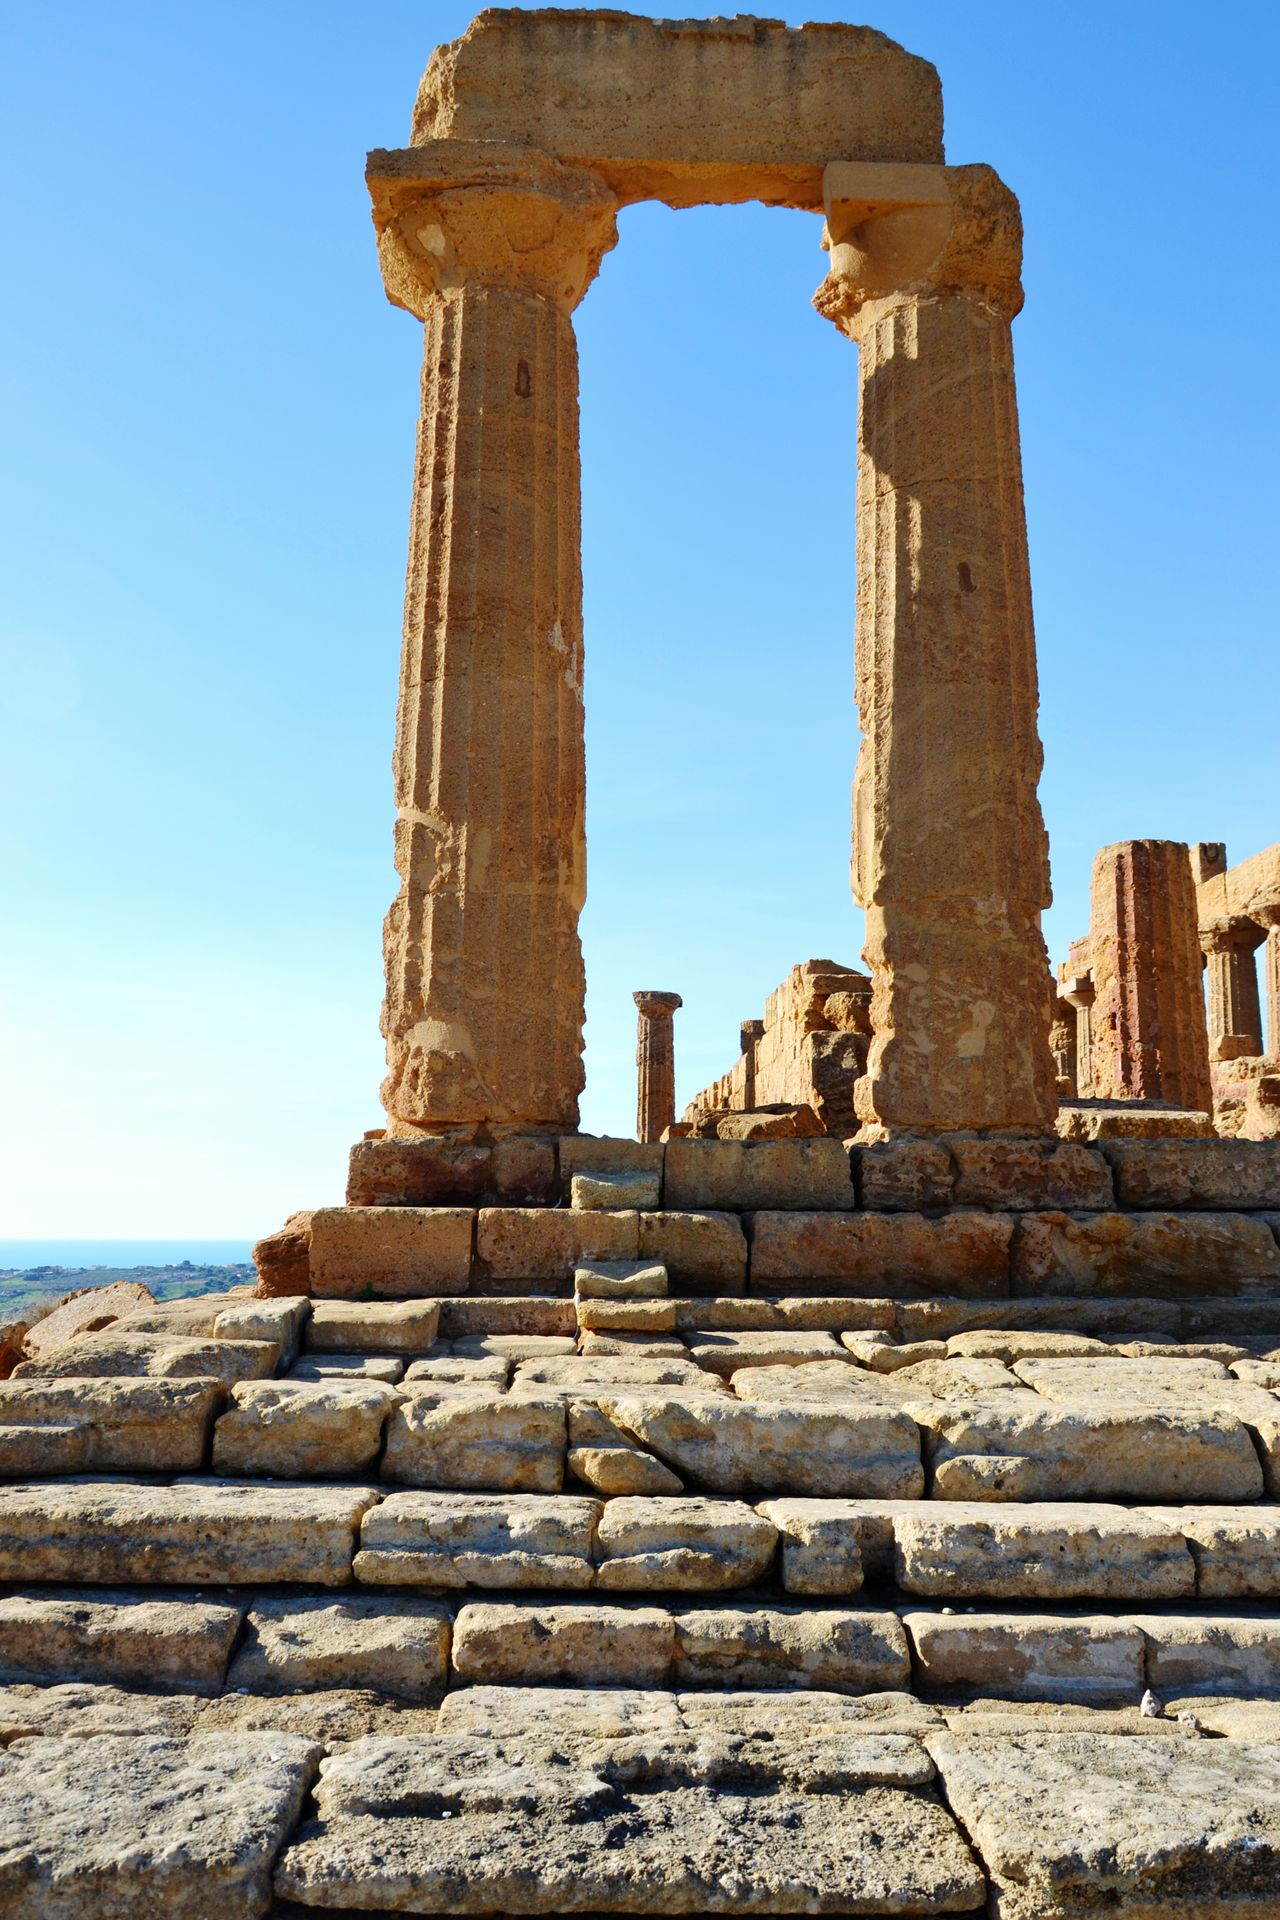 Old Ruin History Travel Destinations Ancient Civilization Outdoors Sky Day Open Edit Agrigento, Sicily Travel Sicilyphotography Architecture Ancient Architectural Column Ruined The Past Ancient History Archaeology Agrigento Sicilianjourney Built Structure Monument Temple